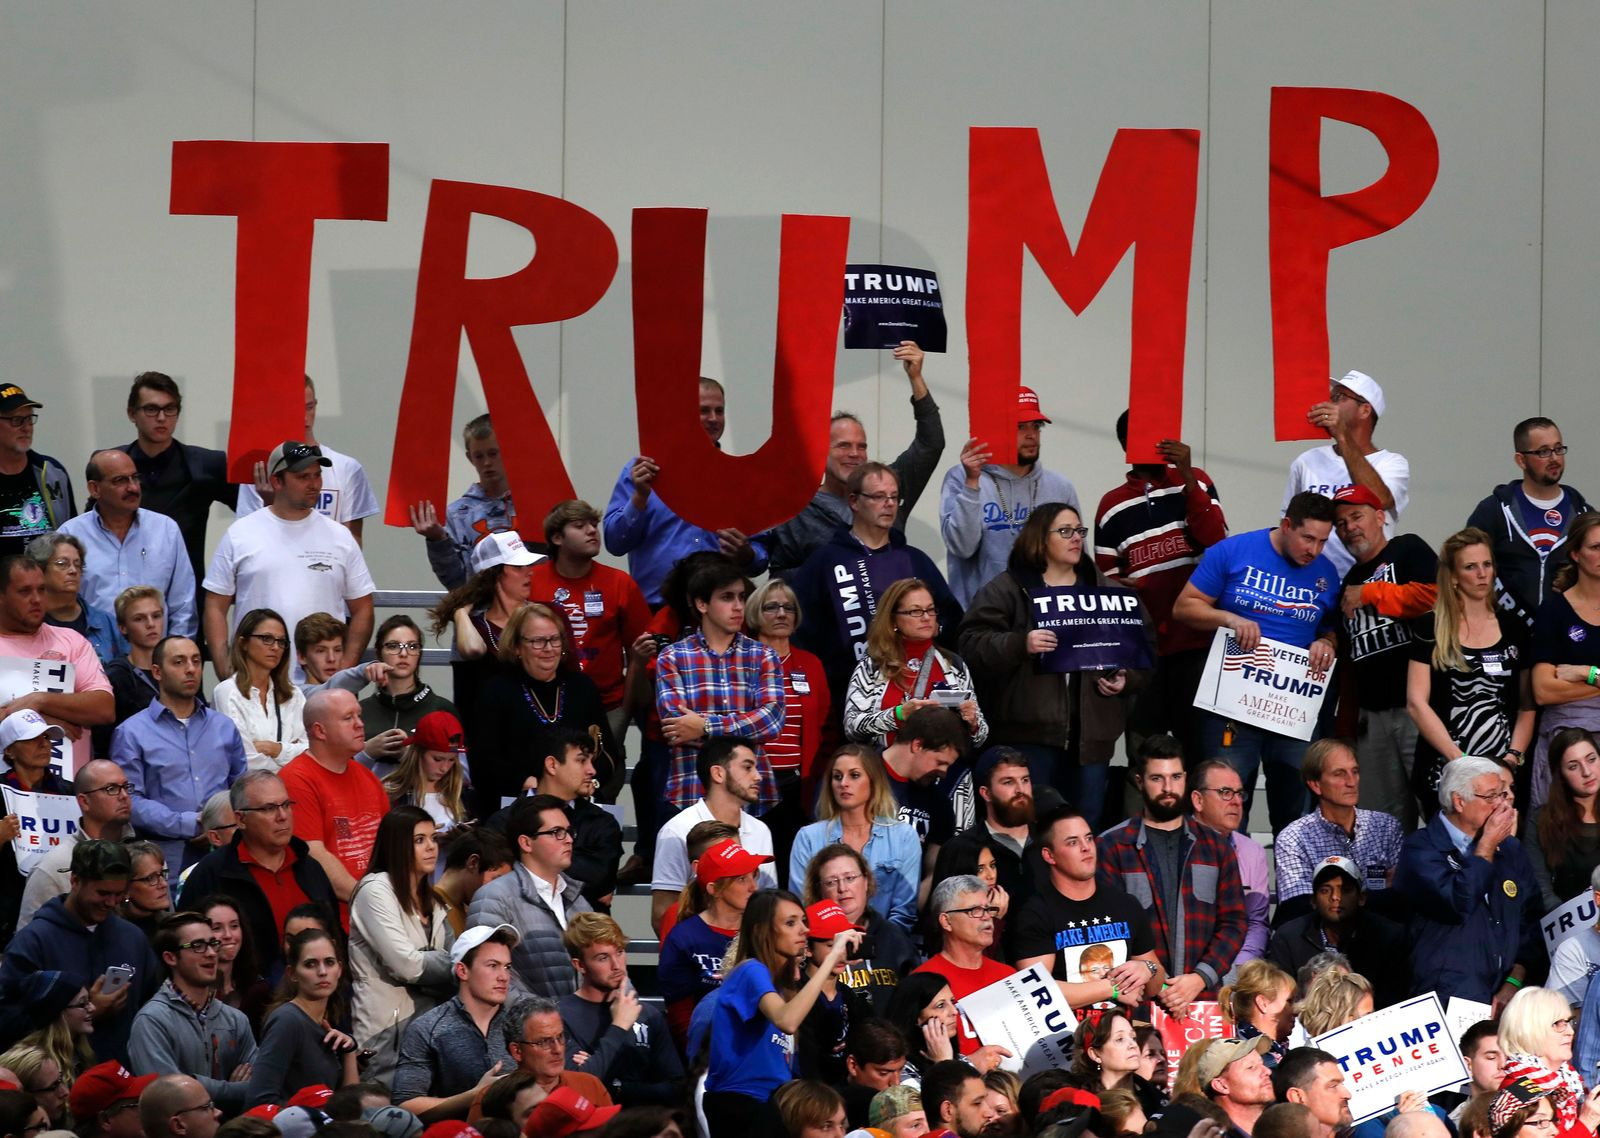 FILE - In this Nov. 8, 2016 file photo, supporters hold signs for Republican presidential candidate Donald Trump during a rally, in Grand Rapids, Michigan. (AP Photo/Paul Sancya, File)